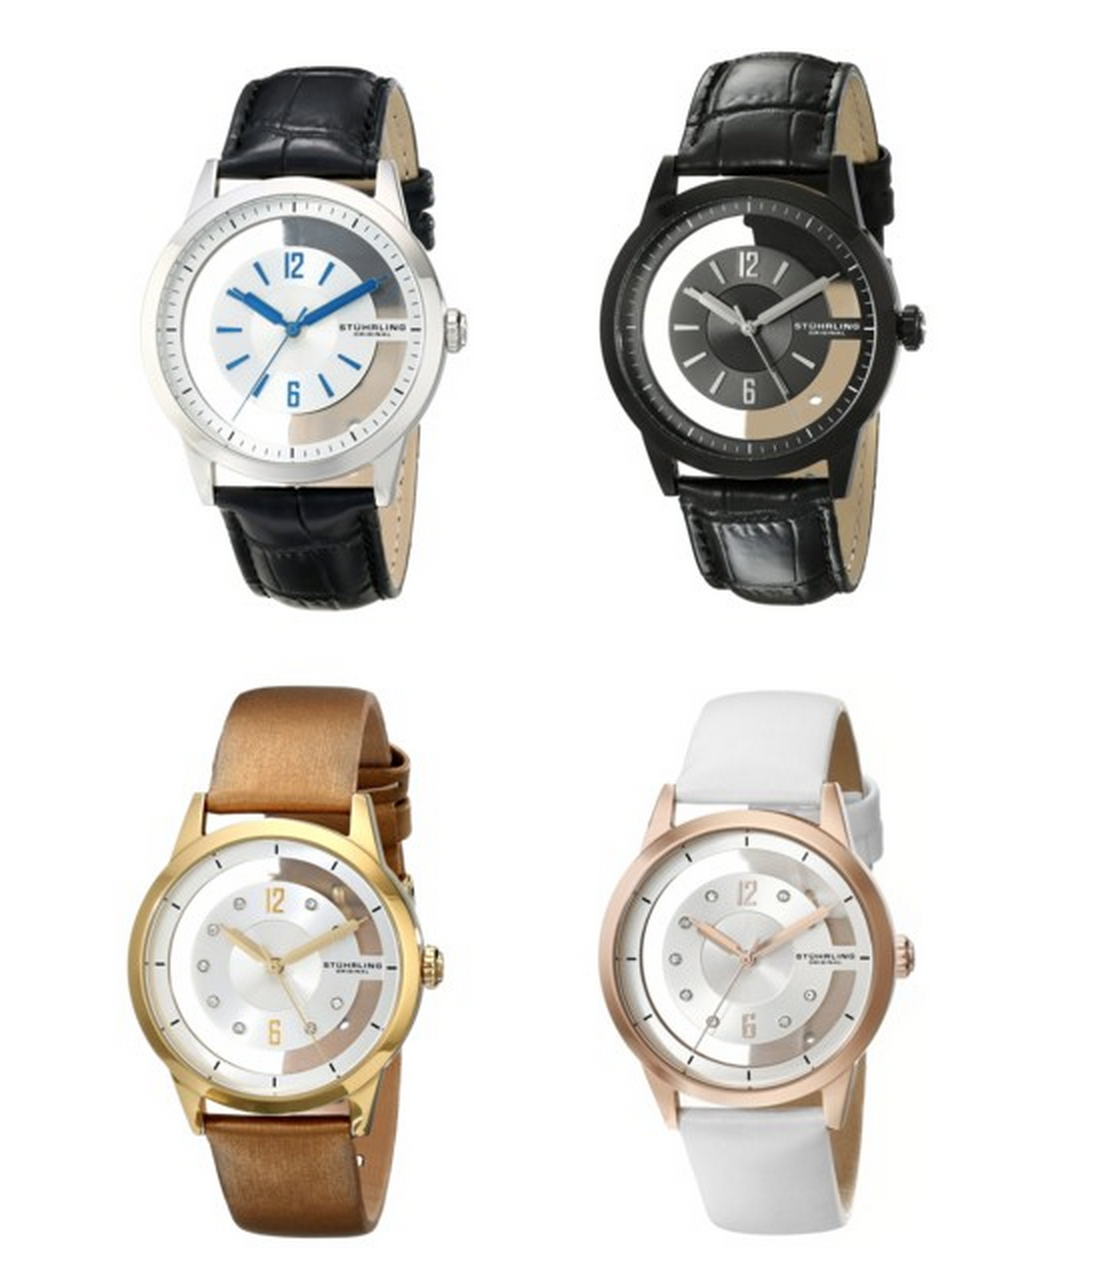 $54.99 Stuhrling Watches for Women and Men (Reg. Up To $345!)